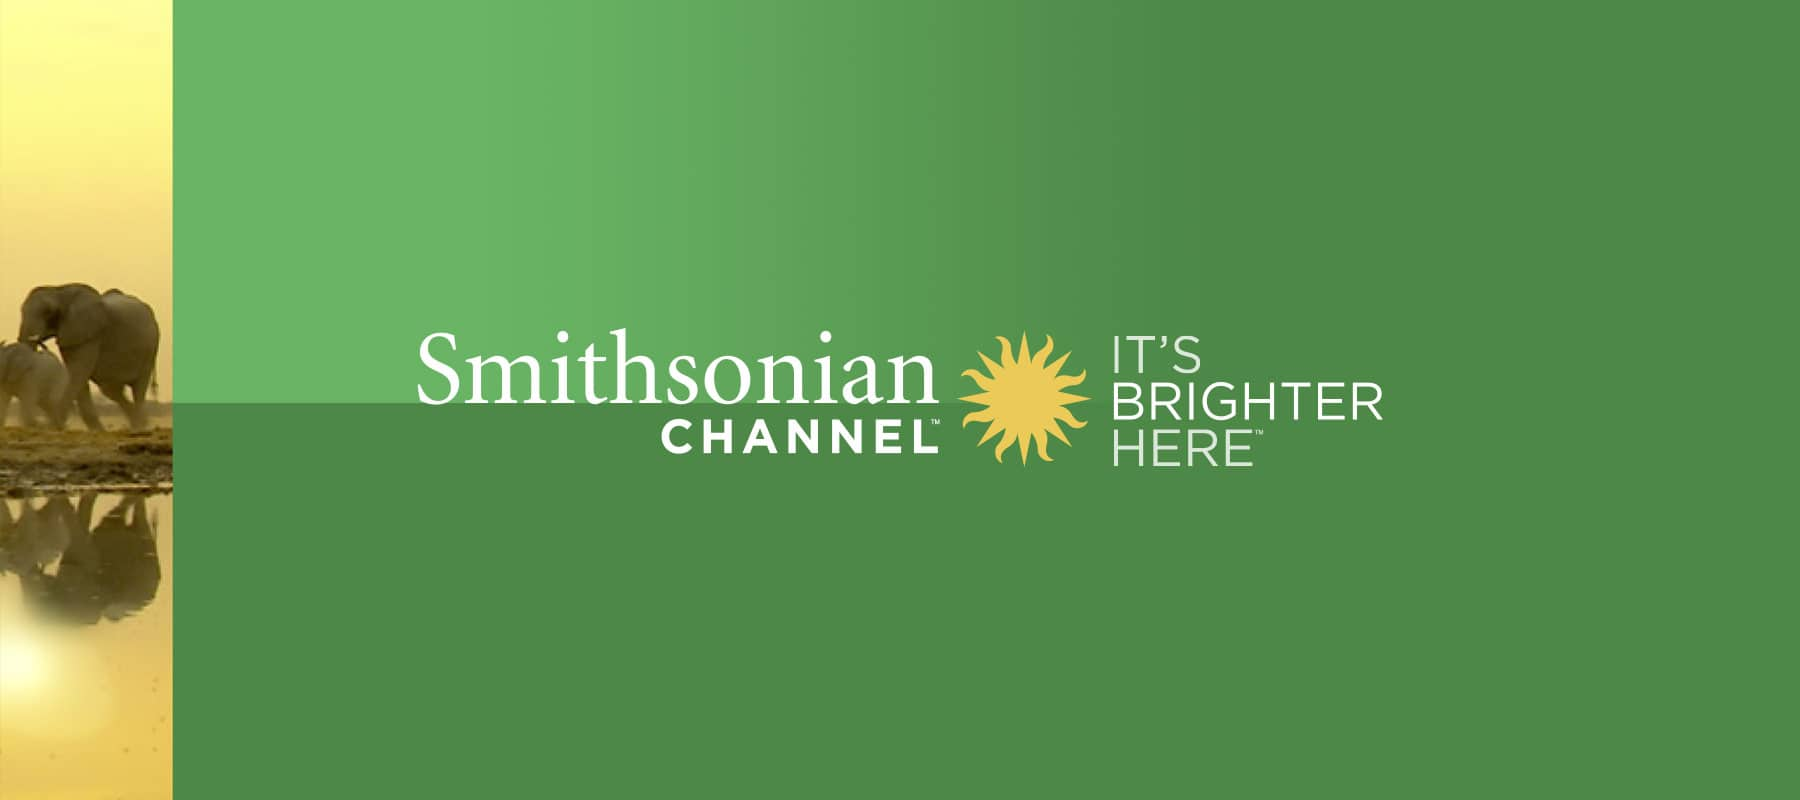 Smithsonian - Digital Marketing for the Entertainment Industry